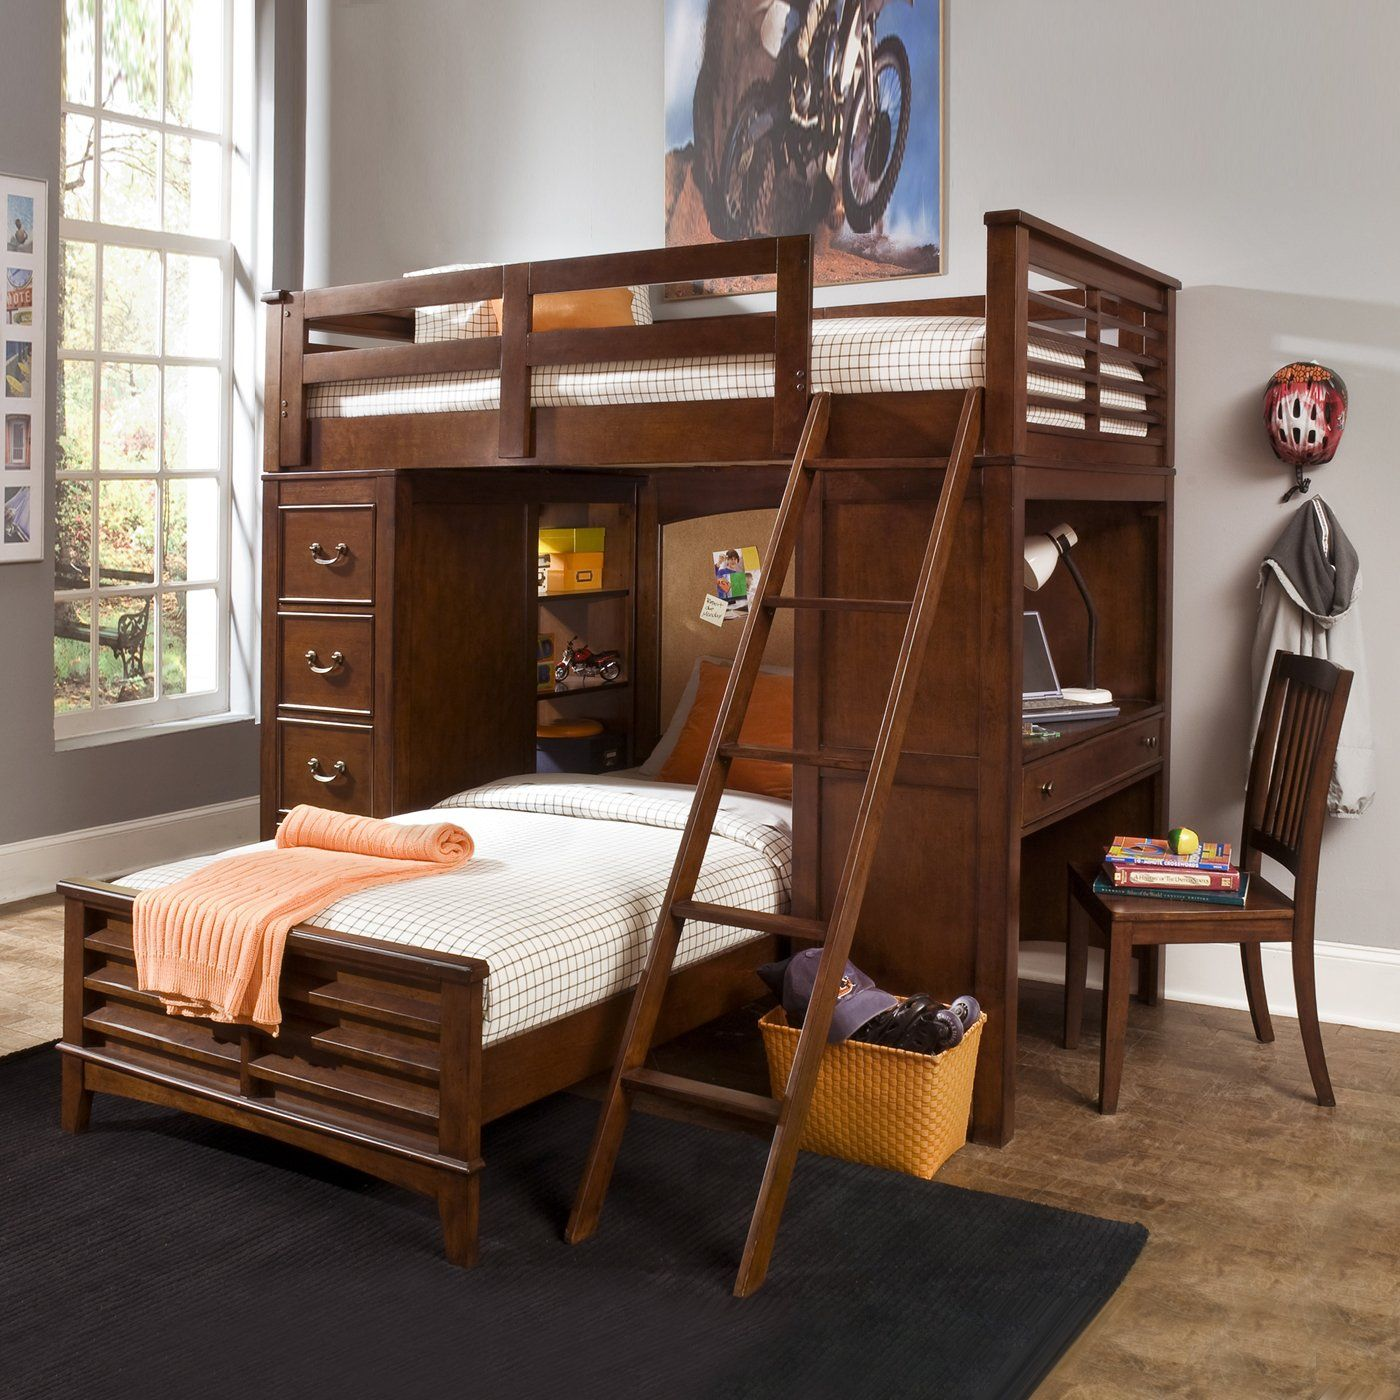 Queen loft bed ideas  Bunk Beds with desk and builtin storage  Brandon bedroom